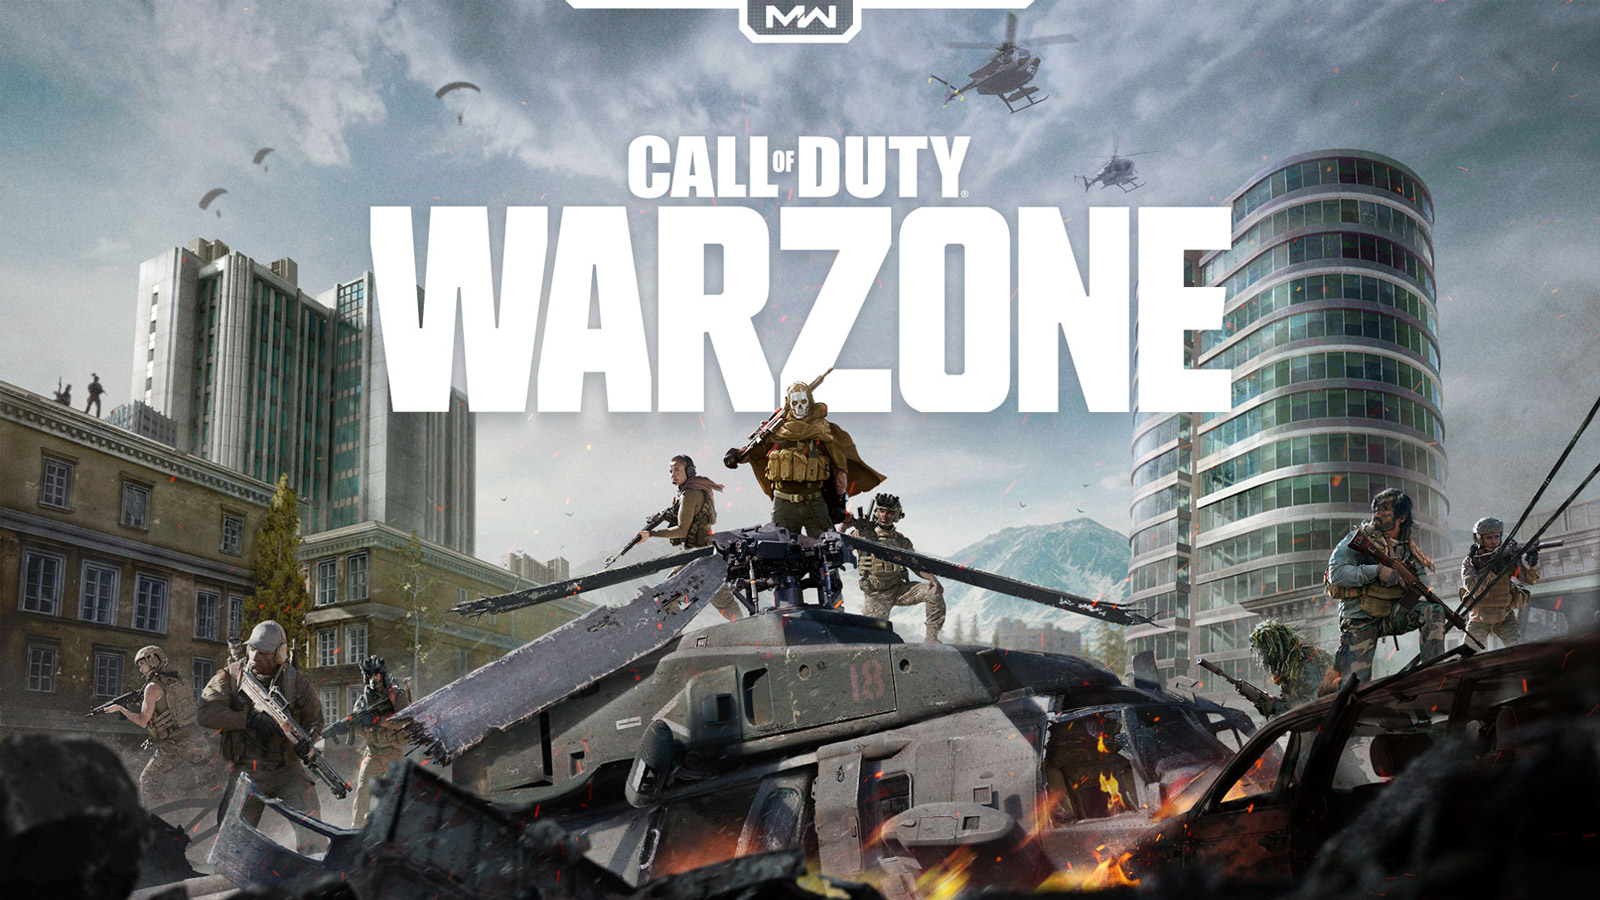 Free Call of Duty: Warzone Wallpaper in 1600x900